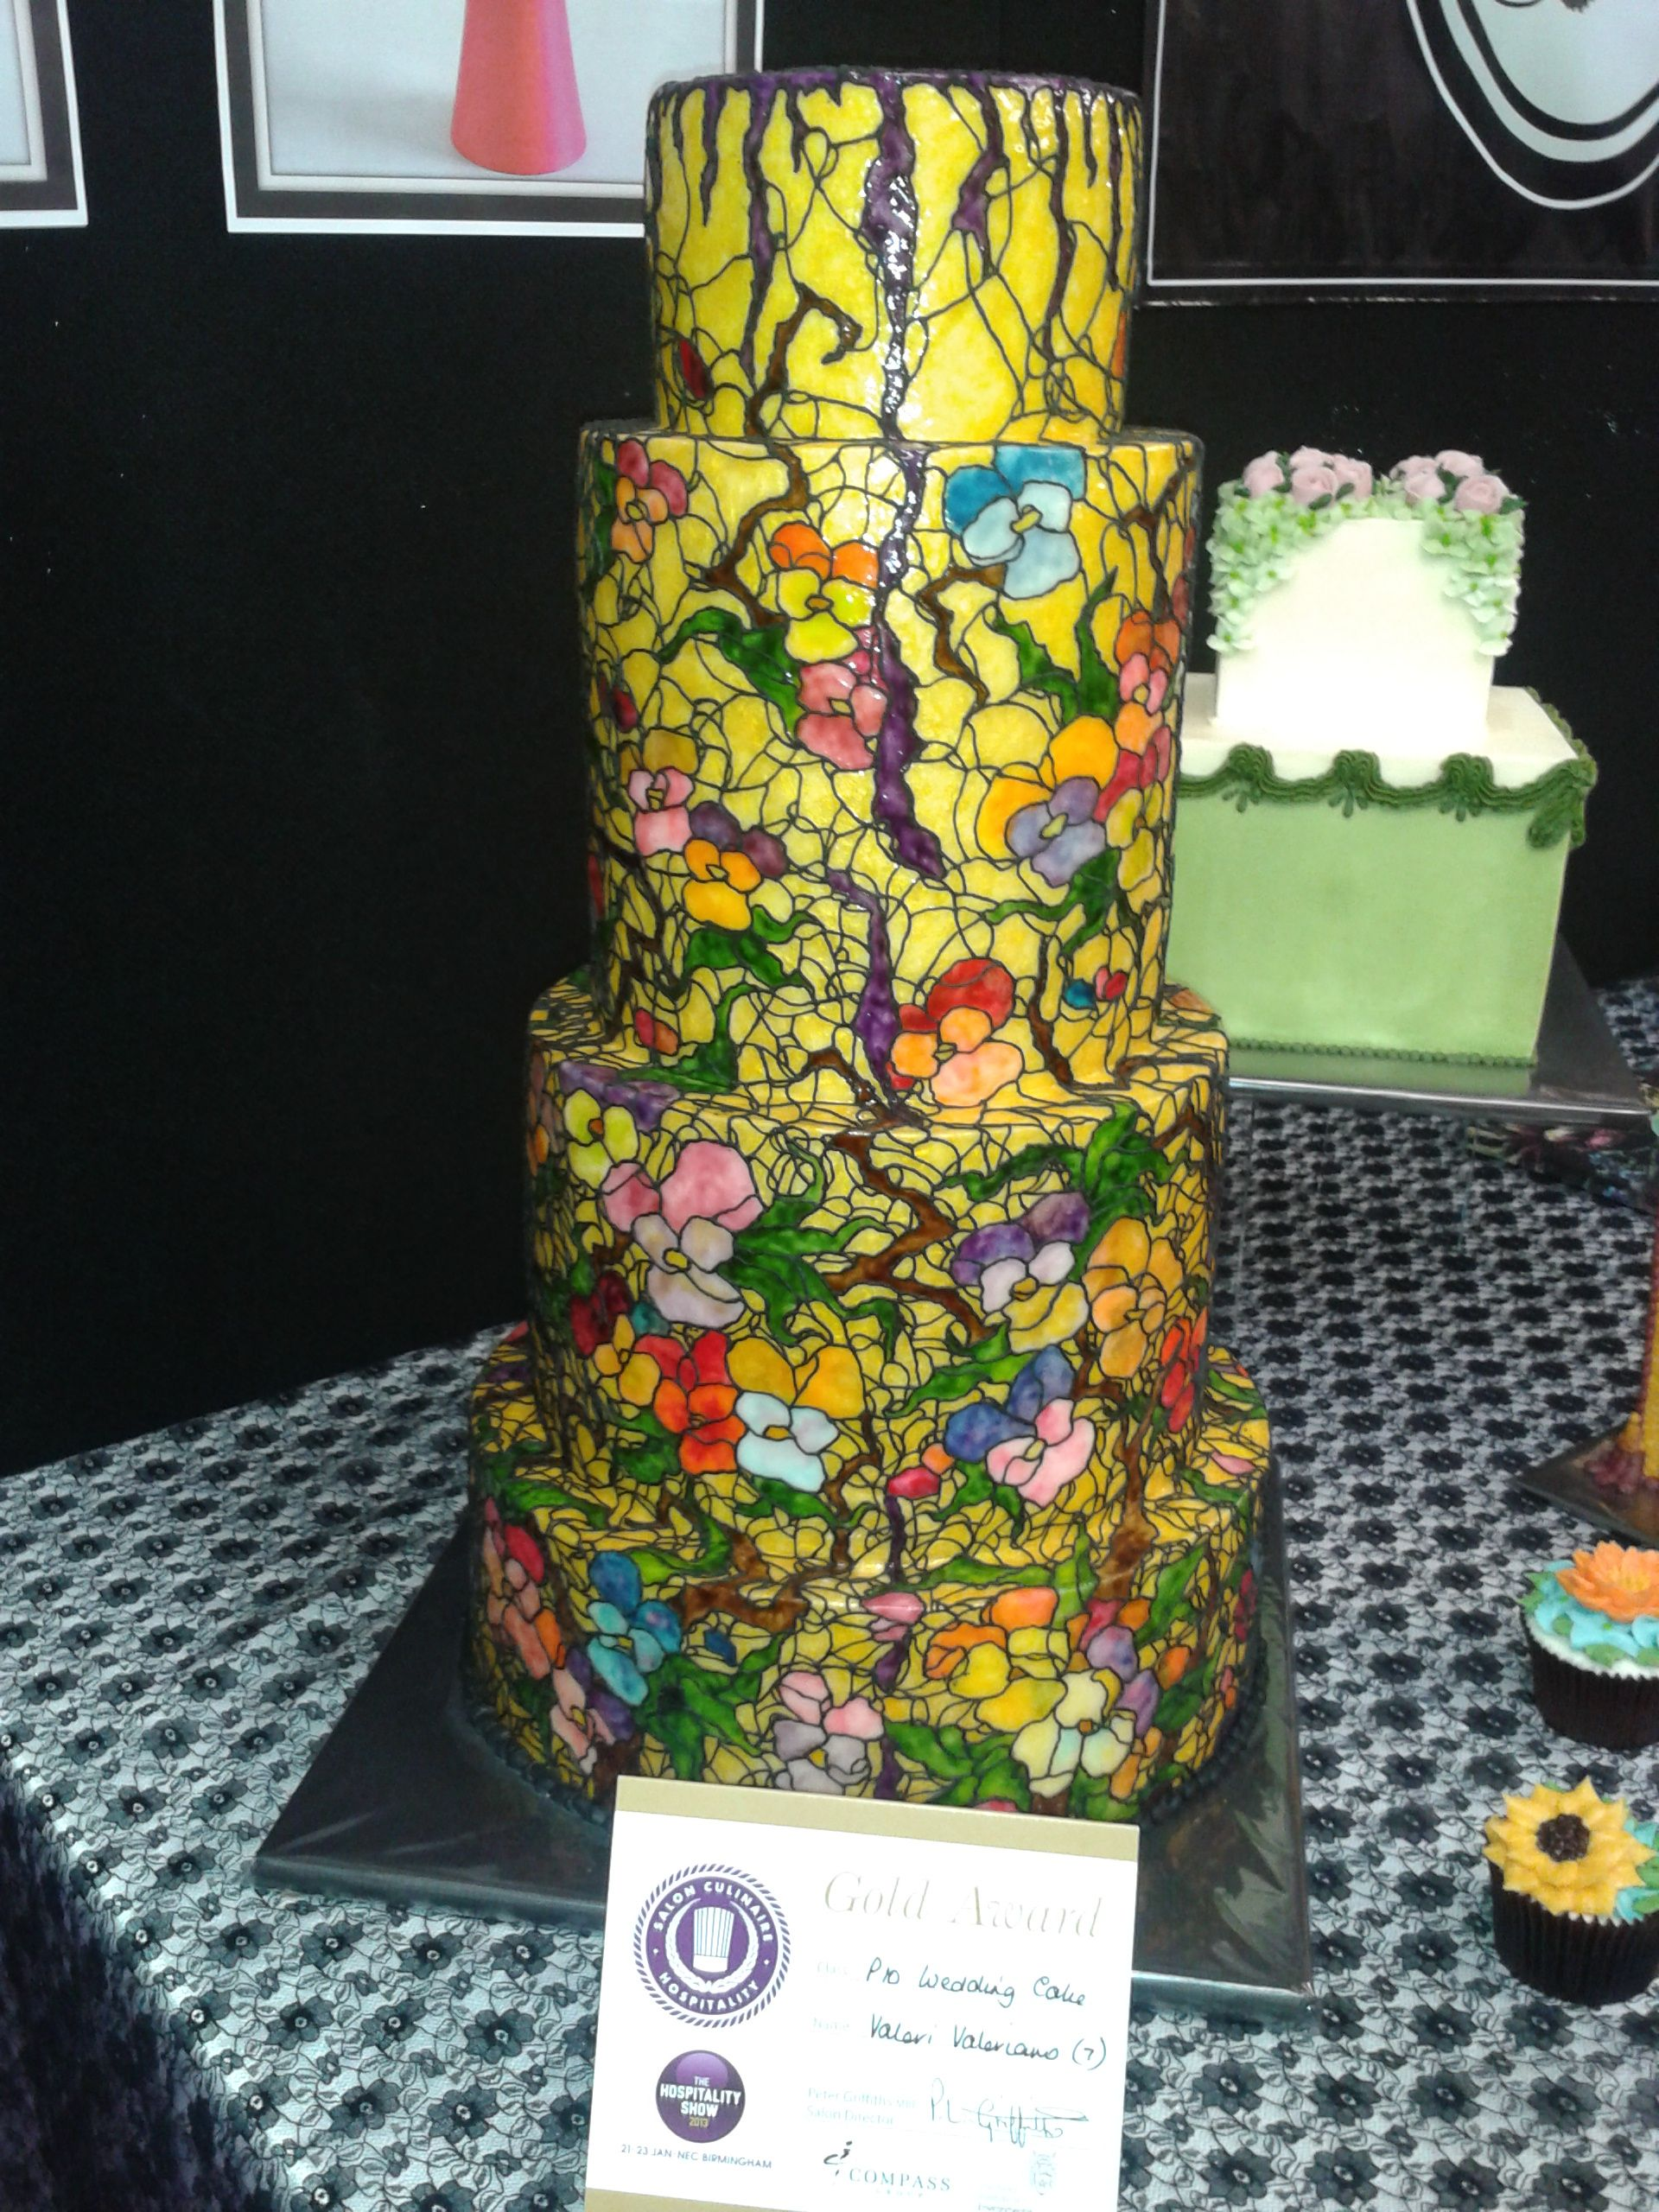 Amazing cake decoration and sugarcraft.